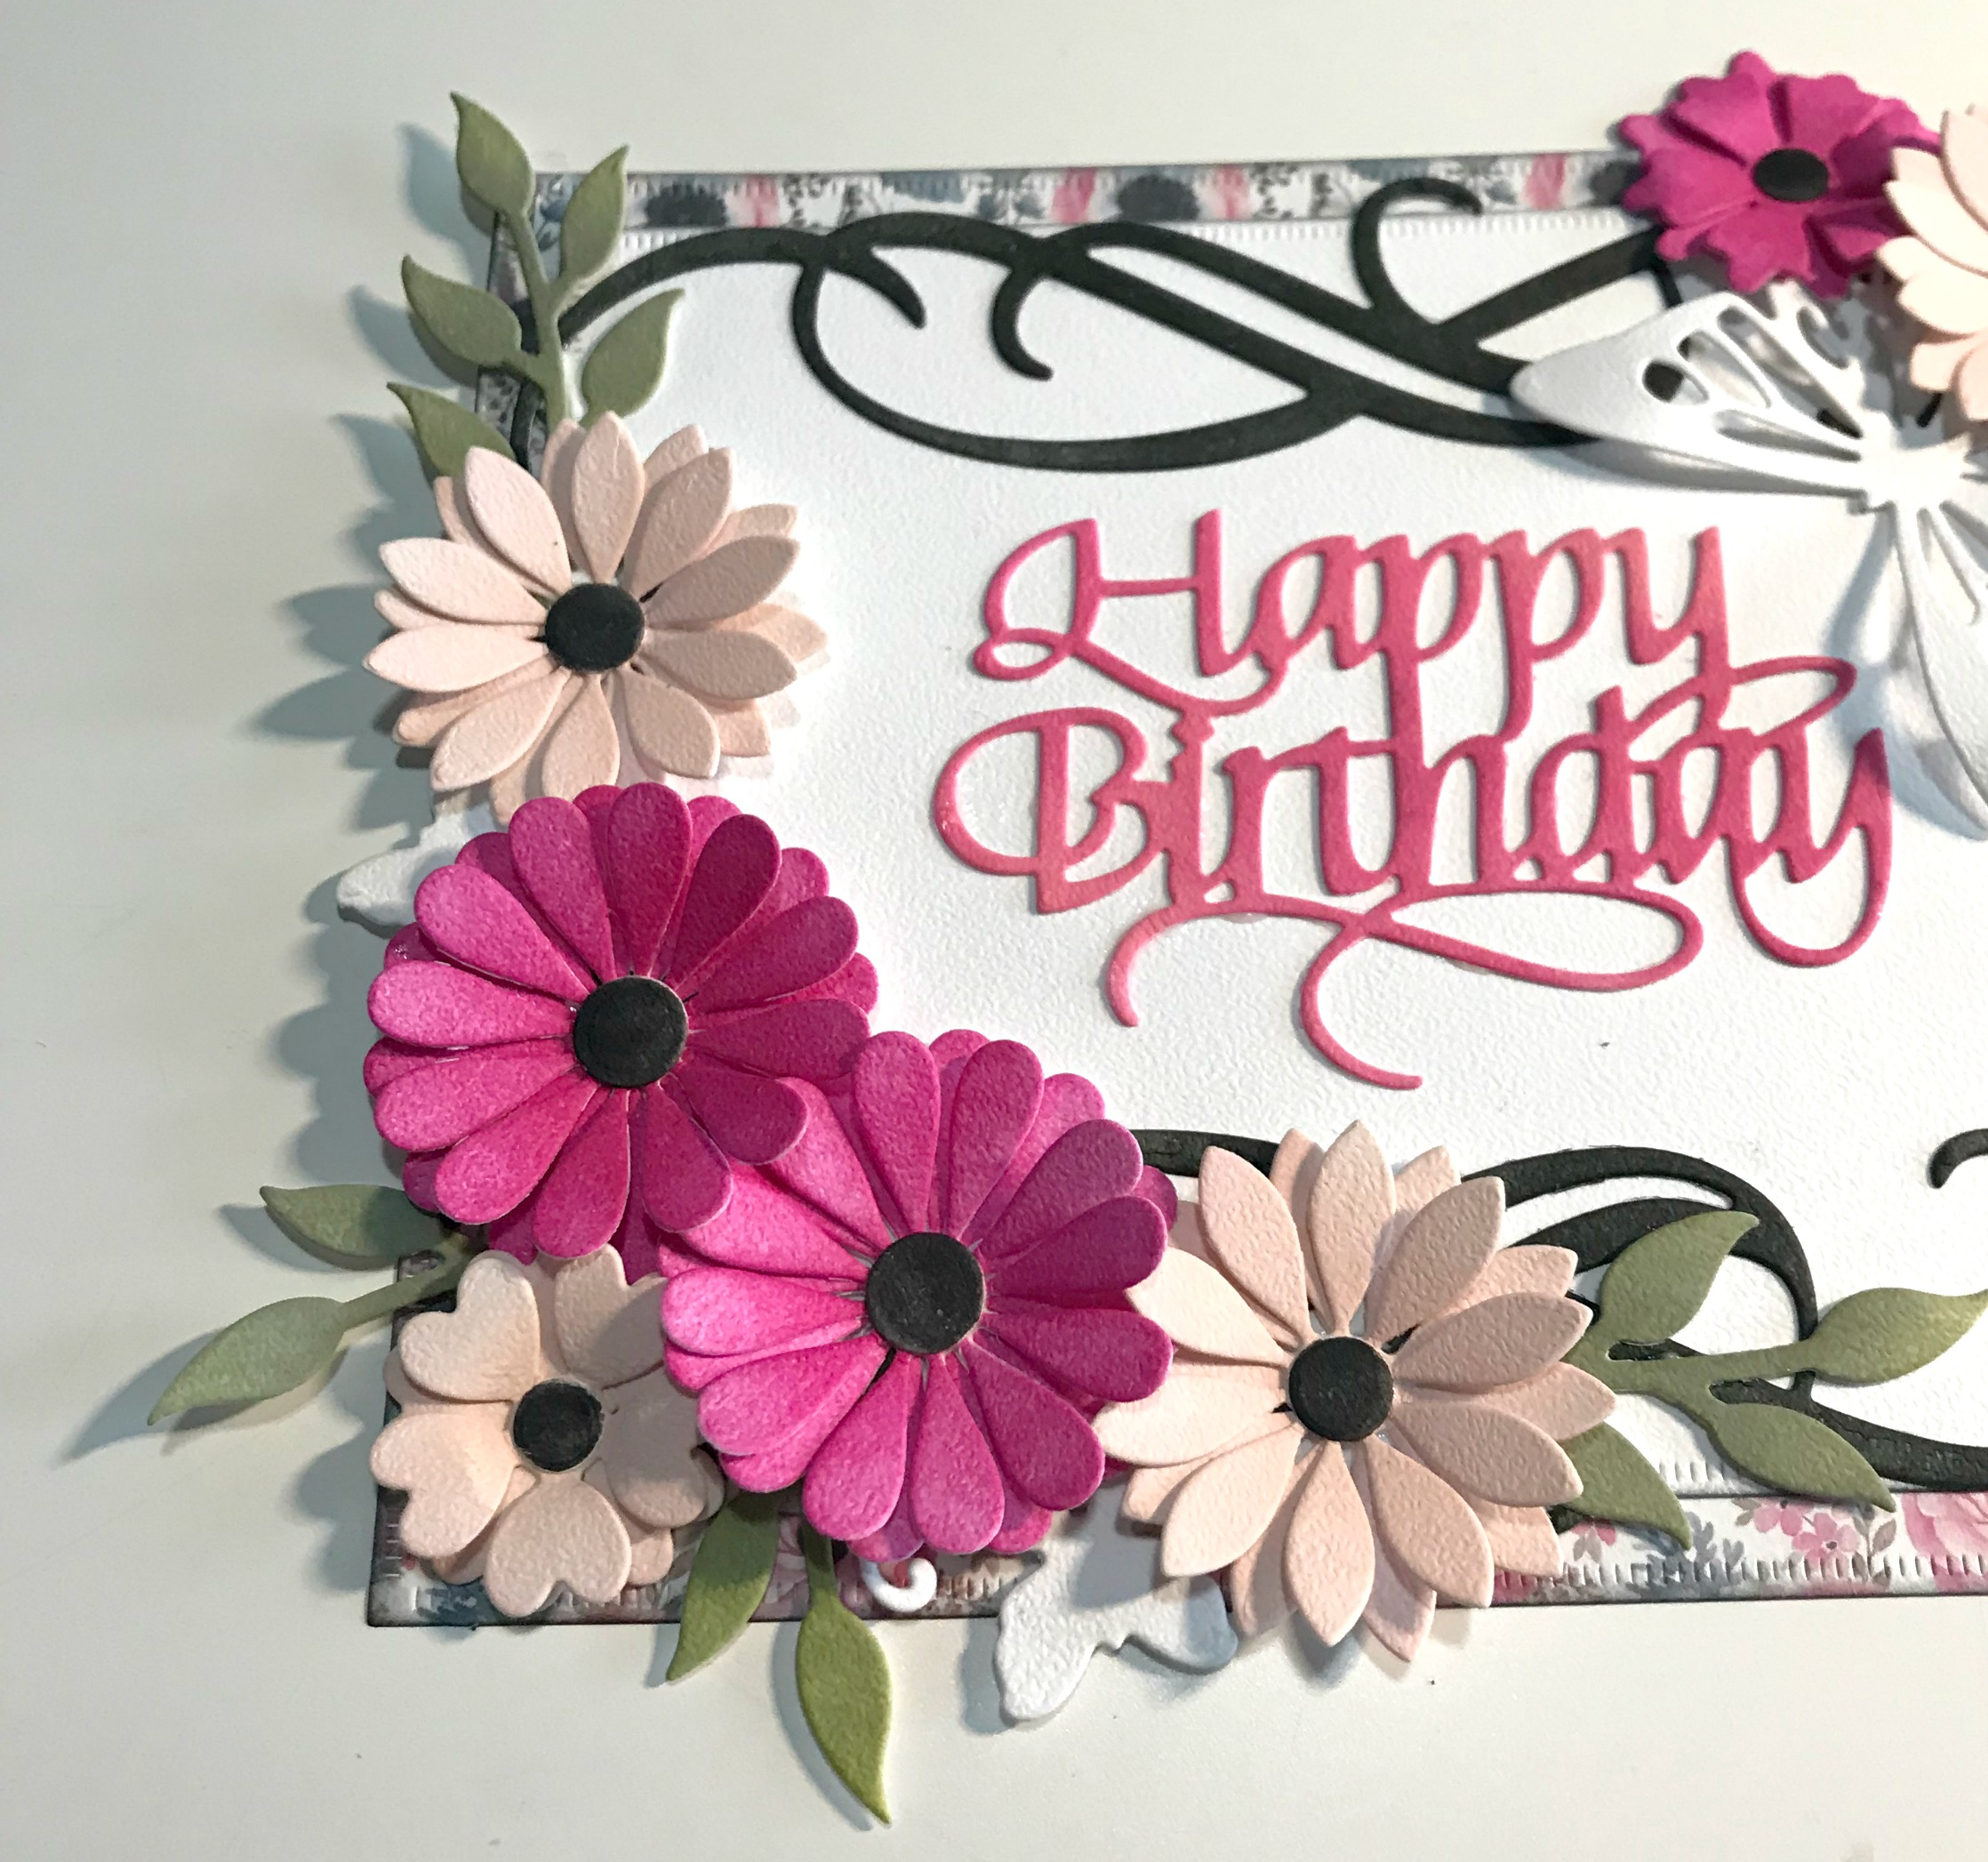 Happy Birthday Card Designed By Katelyn Grosart Featuring Elizabeth Craft Designs And Ranger